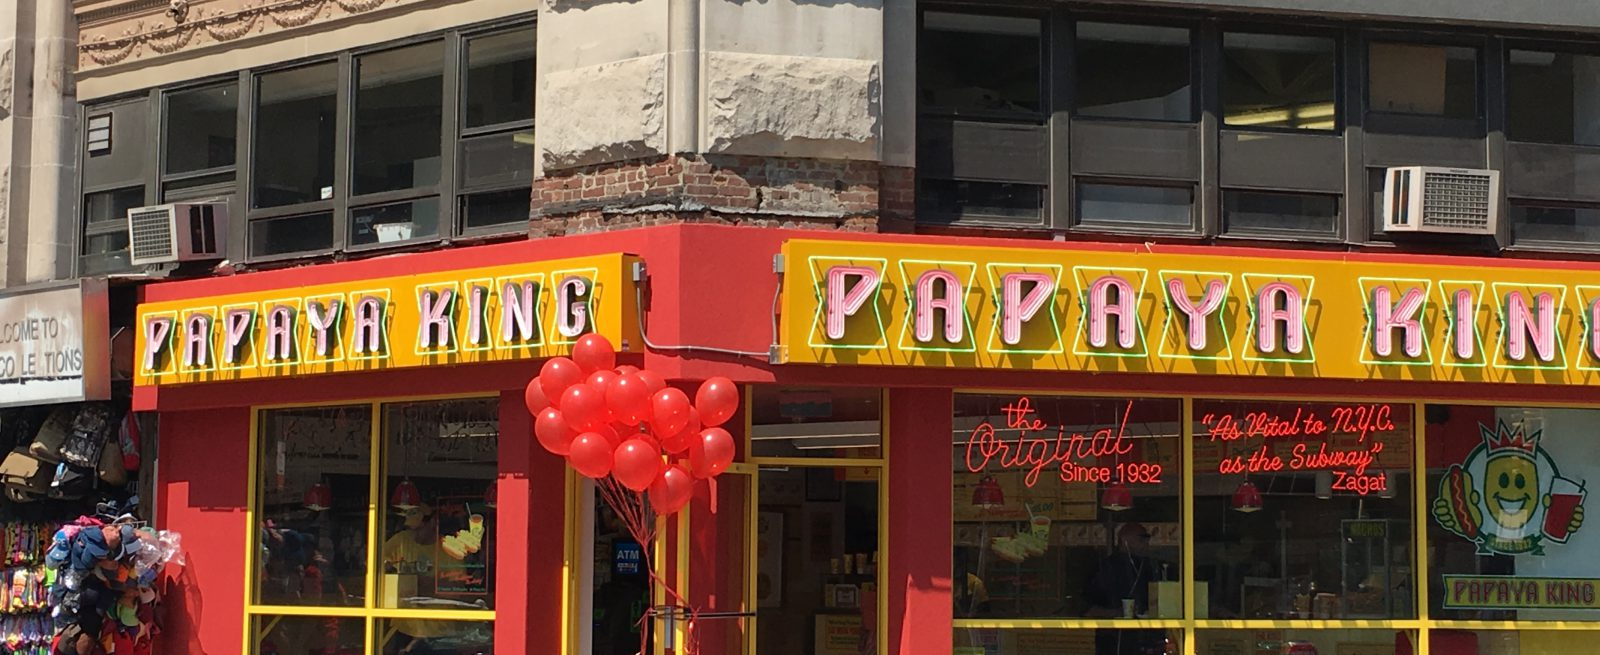 MRM Franchise Feed: Papaya King Franchising, Carl's Jr  in